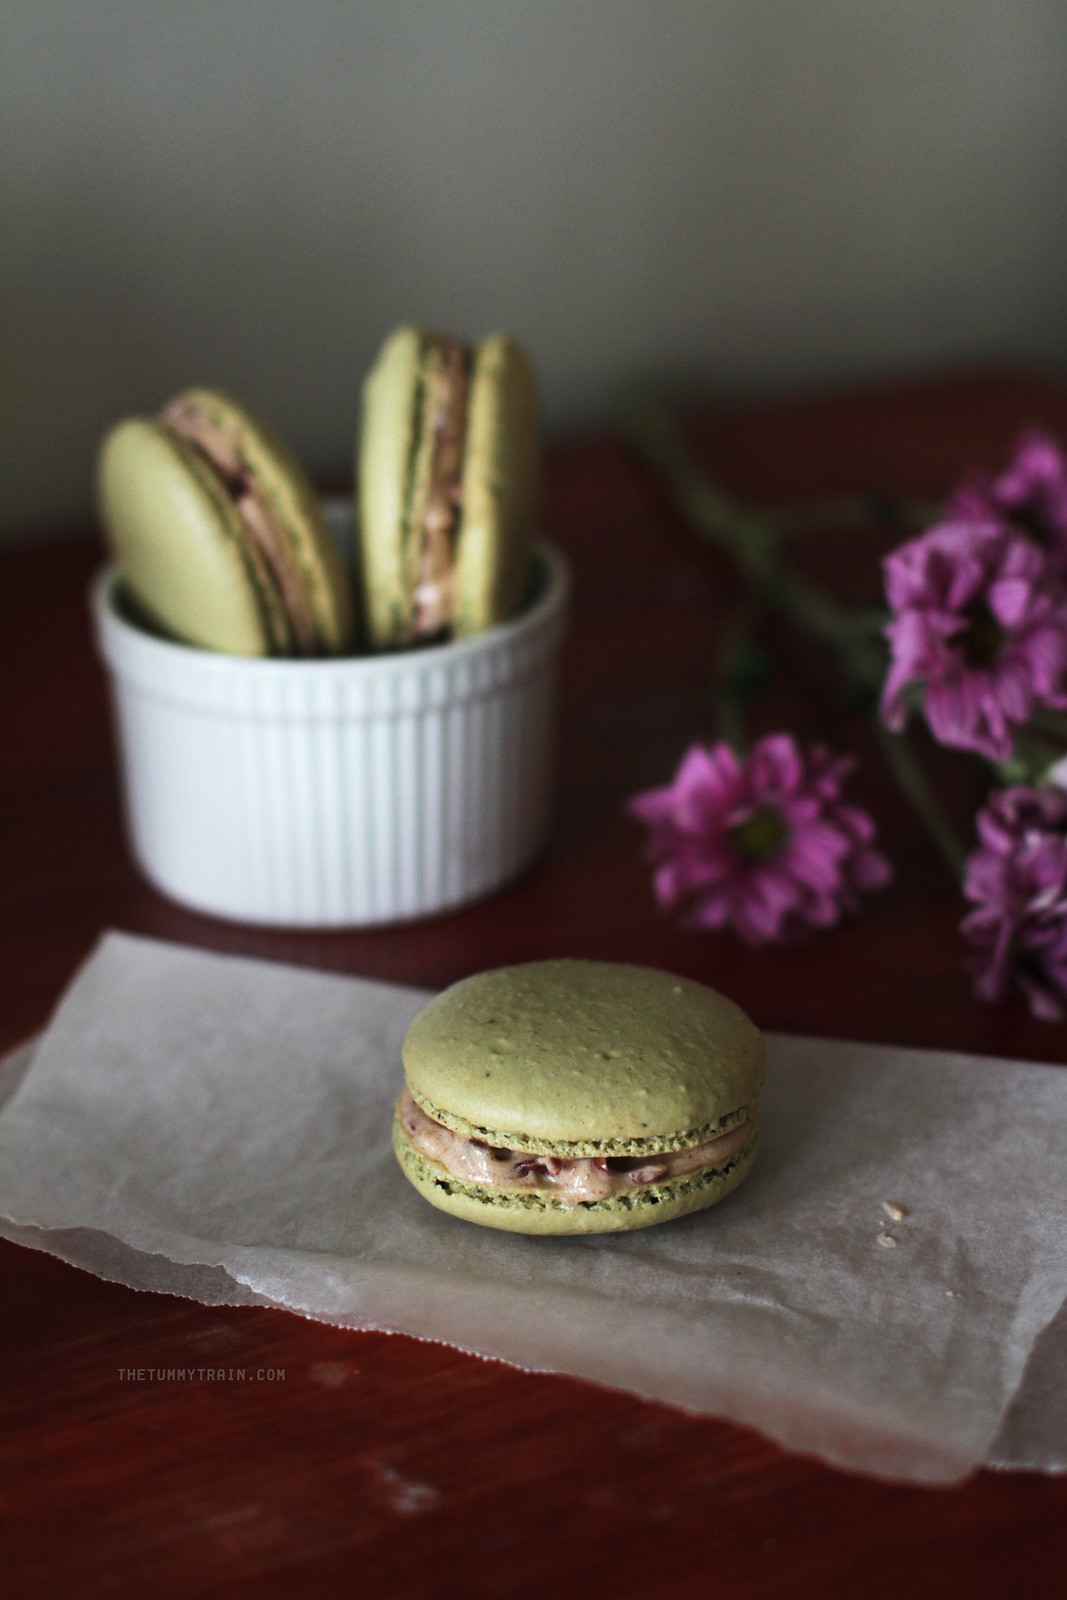 21077777272 87962bc473 h - Matcha Macarons with Red Bean Filling + My Japan Travel Video!